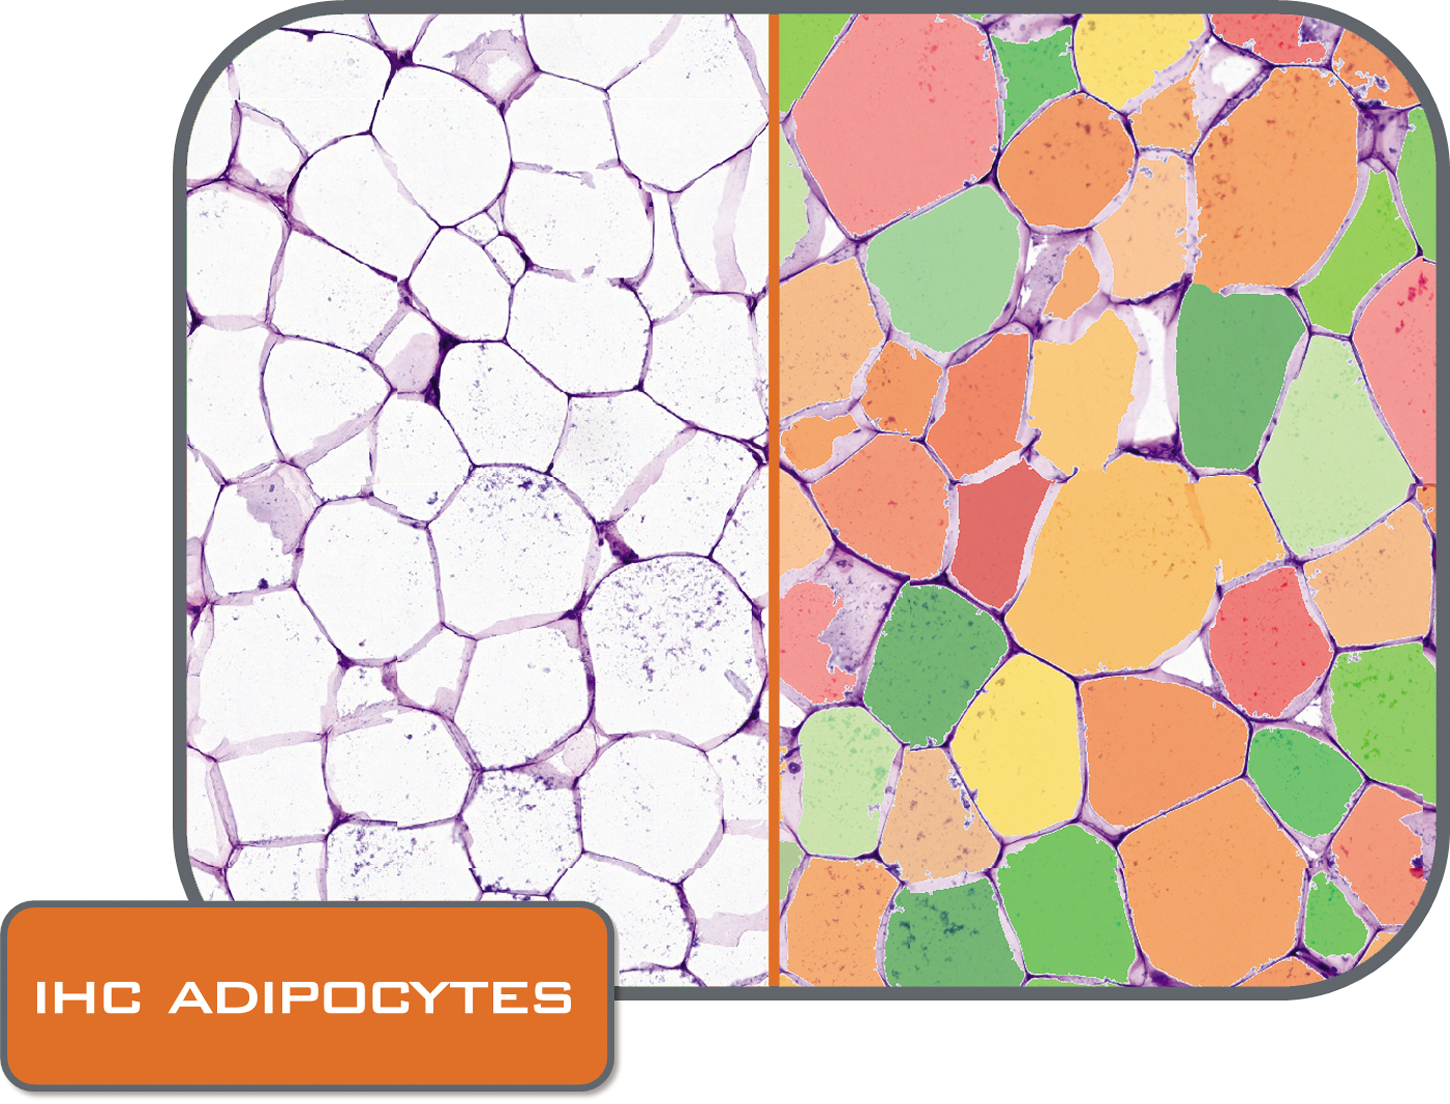 Adipocytes folder_CMYK.png